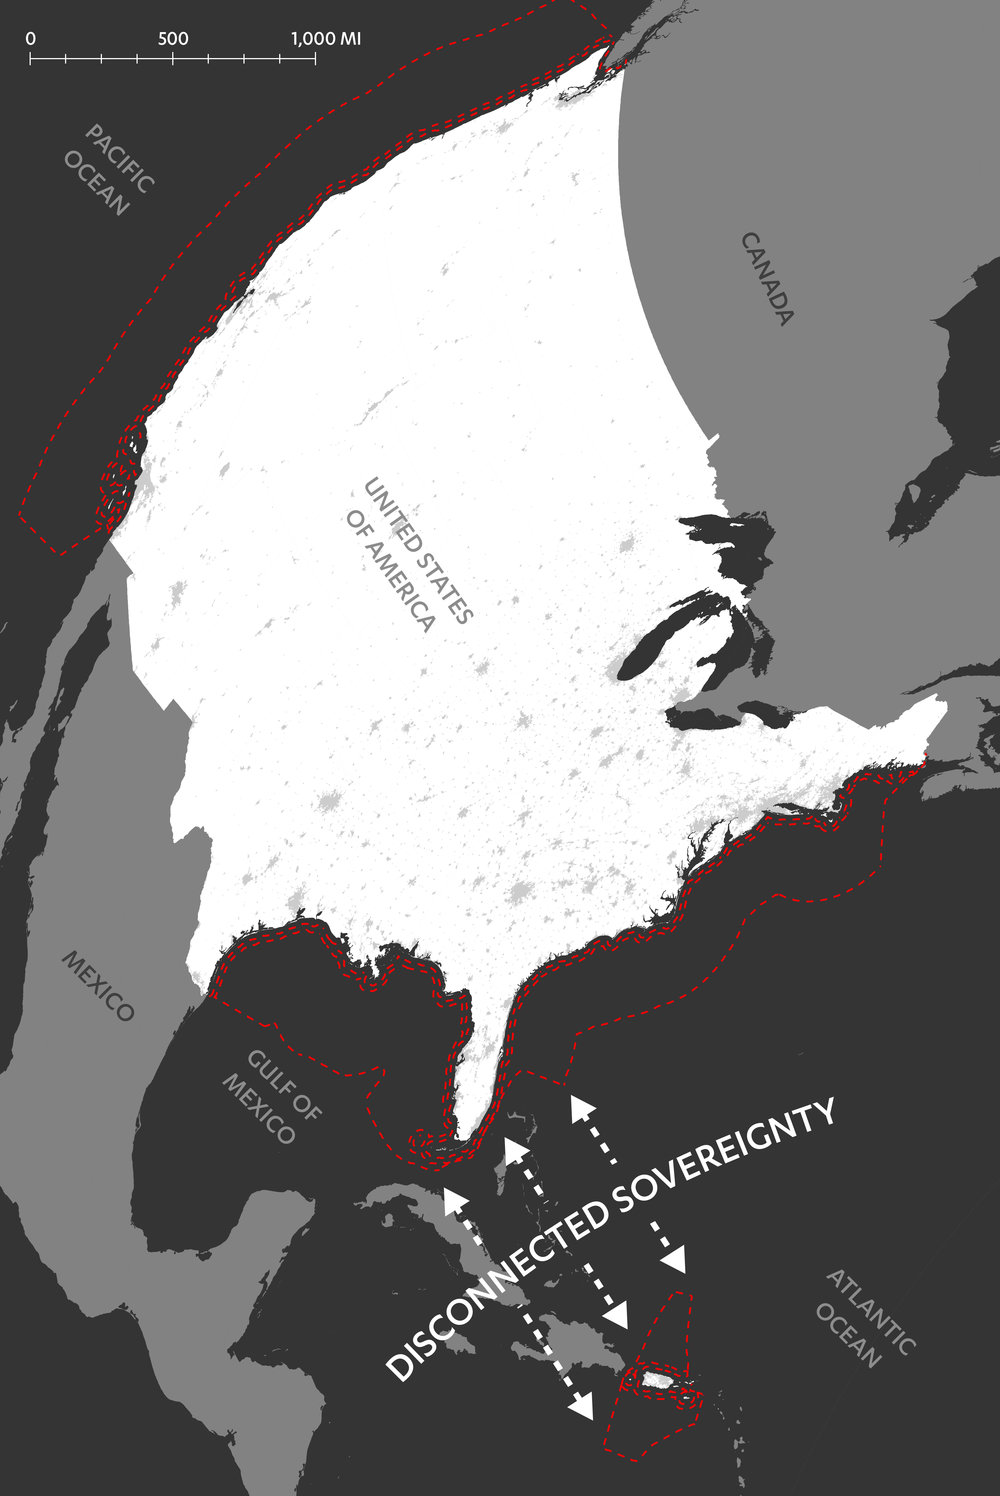 Figure 2: The border of the United States exerts a violent force on Puerto Rico, the distance creates a disconnected zone of sovereignty that exacerbates the island's second-class citizenship (Rivera, 2017). This disconnected sovereignty also distances the Puerto Rico diaspora from the island, making diaspora-directed redevelopment efforts difficult to manage.